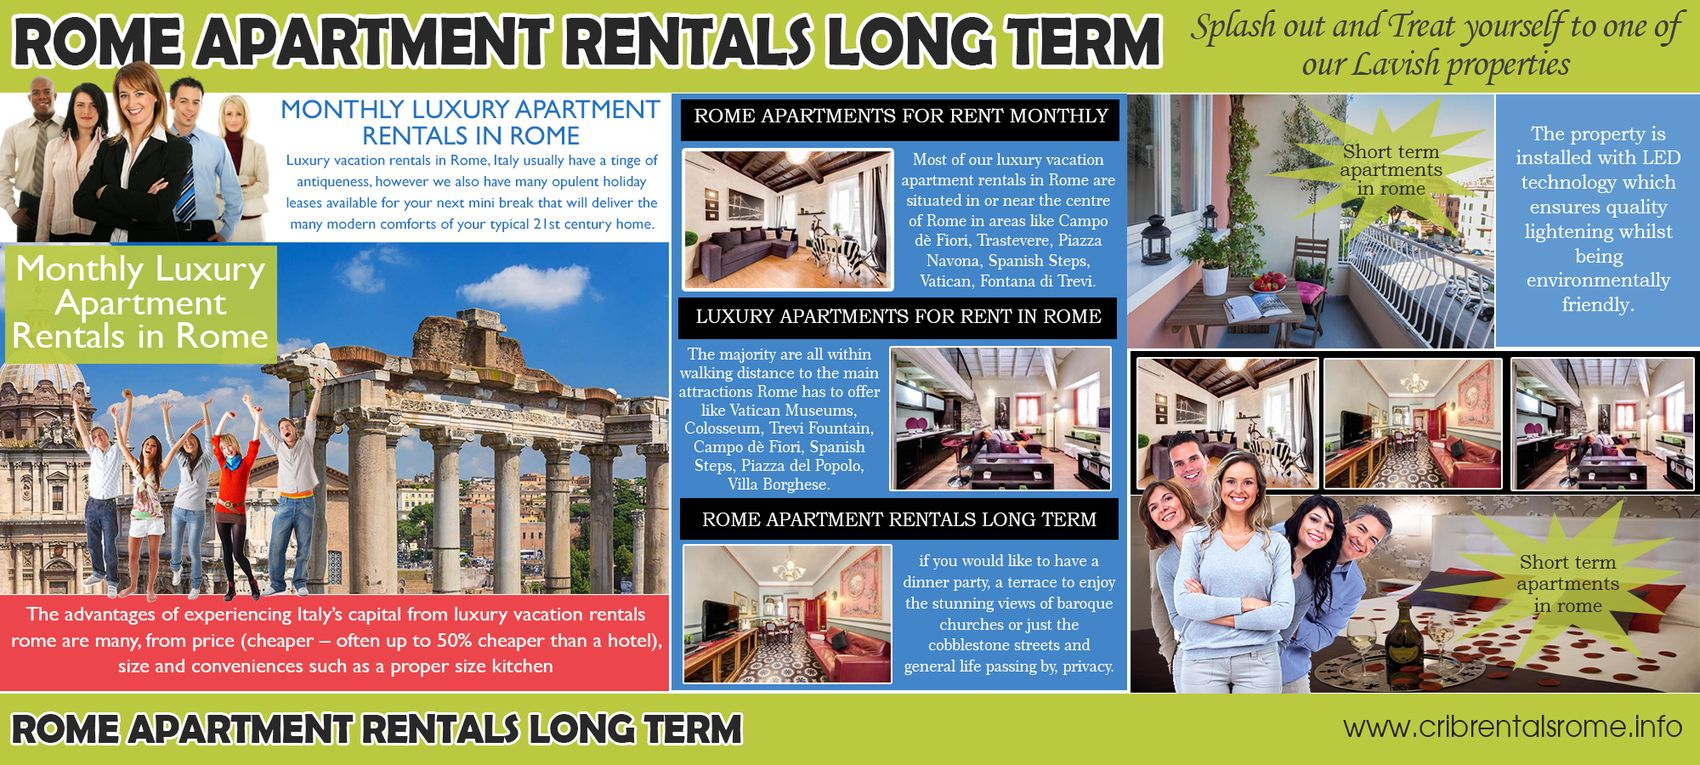 Rental Apartments Luxury Rome Apartment Holiday Accommodation Being A Landlord